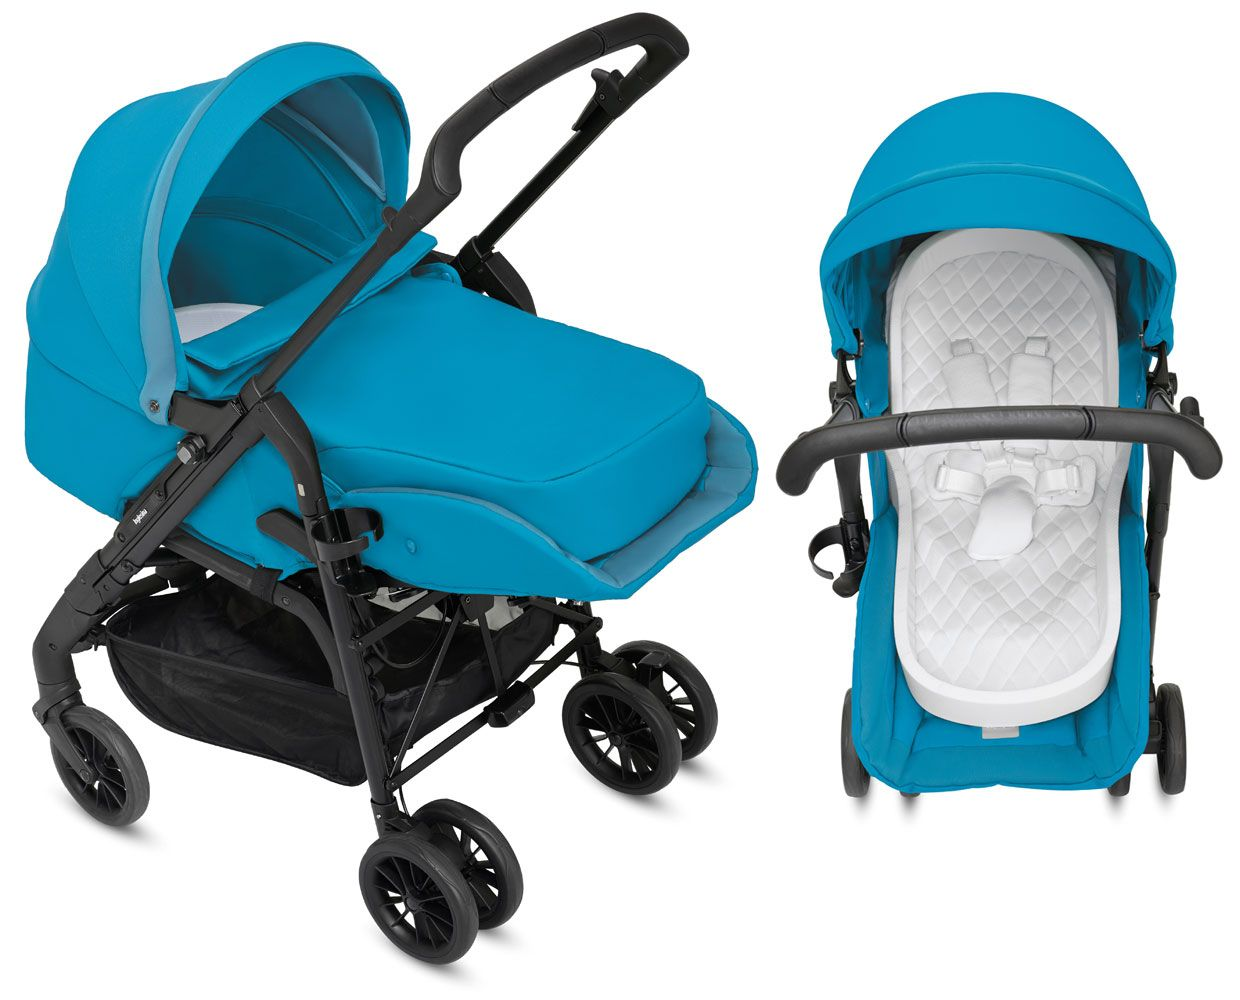 Комплект Sweet Puppy для коляски Inglesina Zippy Light